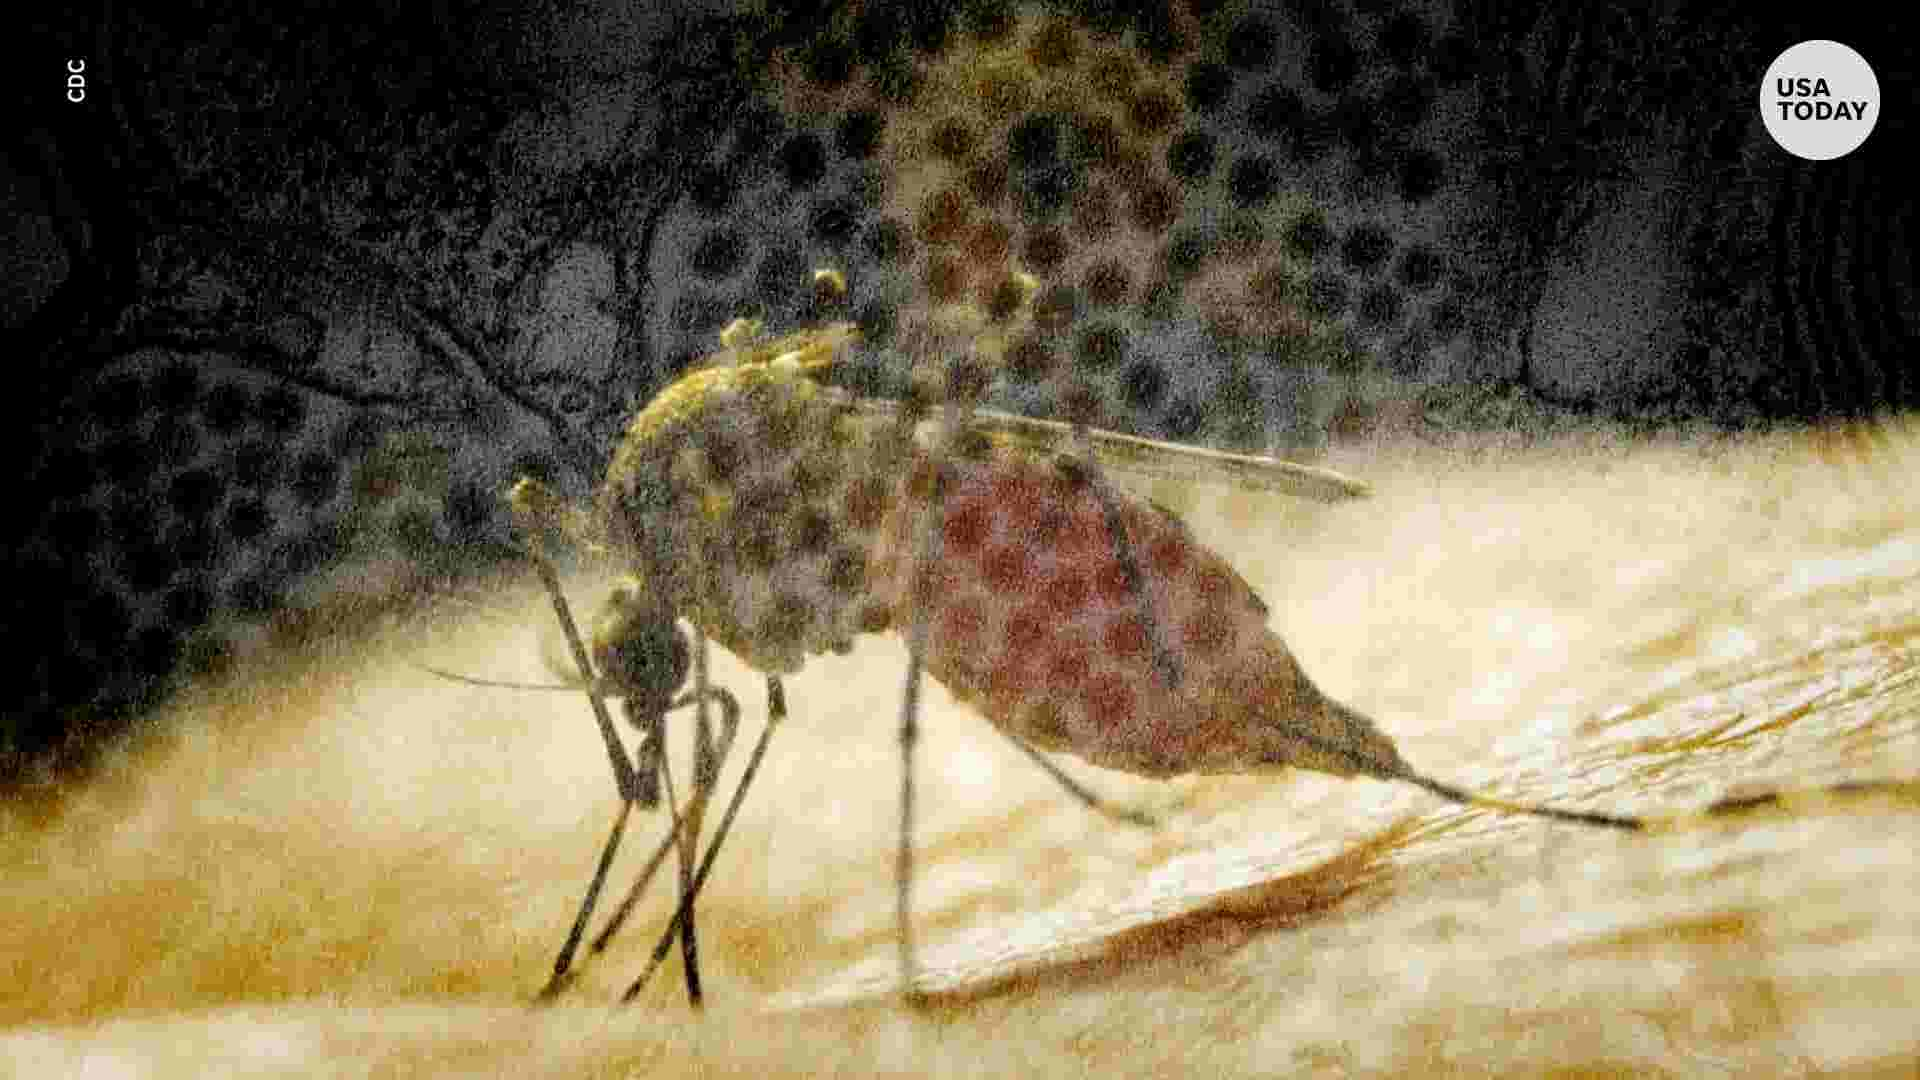 An often deadly form of mosquito-borne encephalitis has flared up across the nation and is already present in Wisconsin, officials say